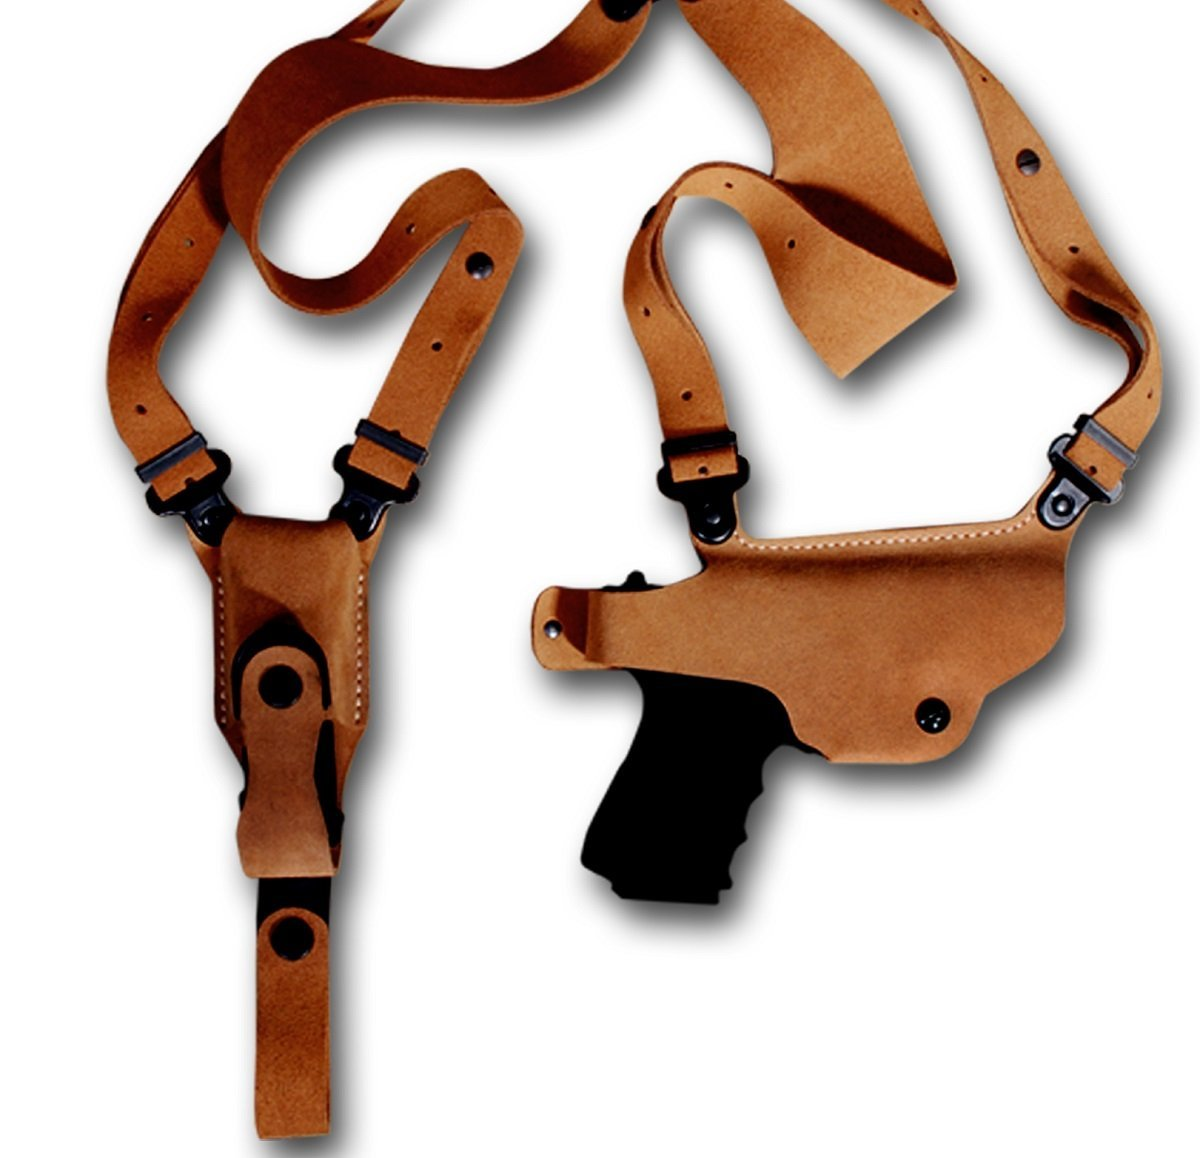 SHOULDER HOLSTER WITH SINGLE MAG CARRIER FOR CZ 75, CZ 75B, CZ 85, CZ 75 P01, CZ 75 P06, CZ 75 P07, CZ 75 SP01, CZ 75 P01, NATURAL BROWN-R/H (CZ 75/75B/85 4''BBL)